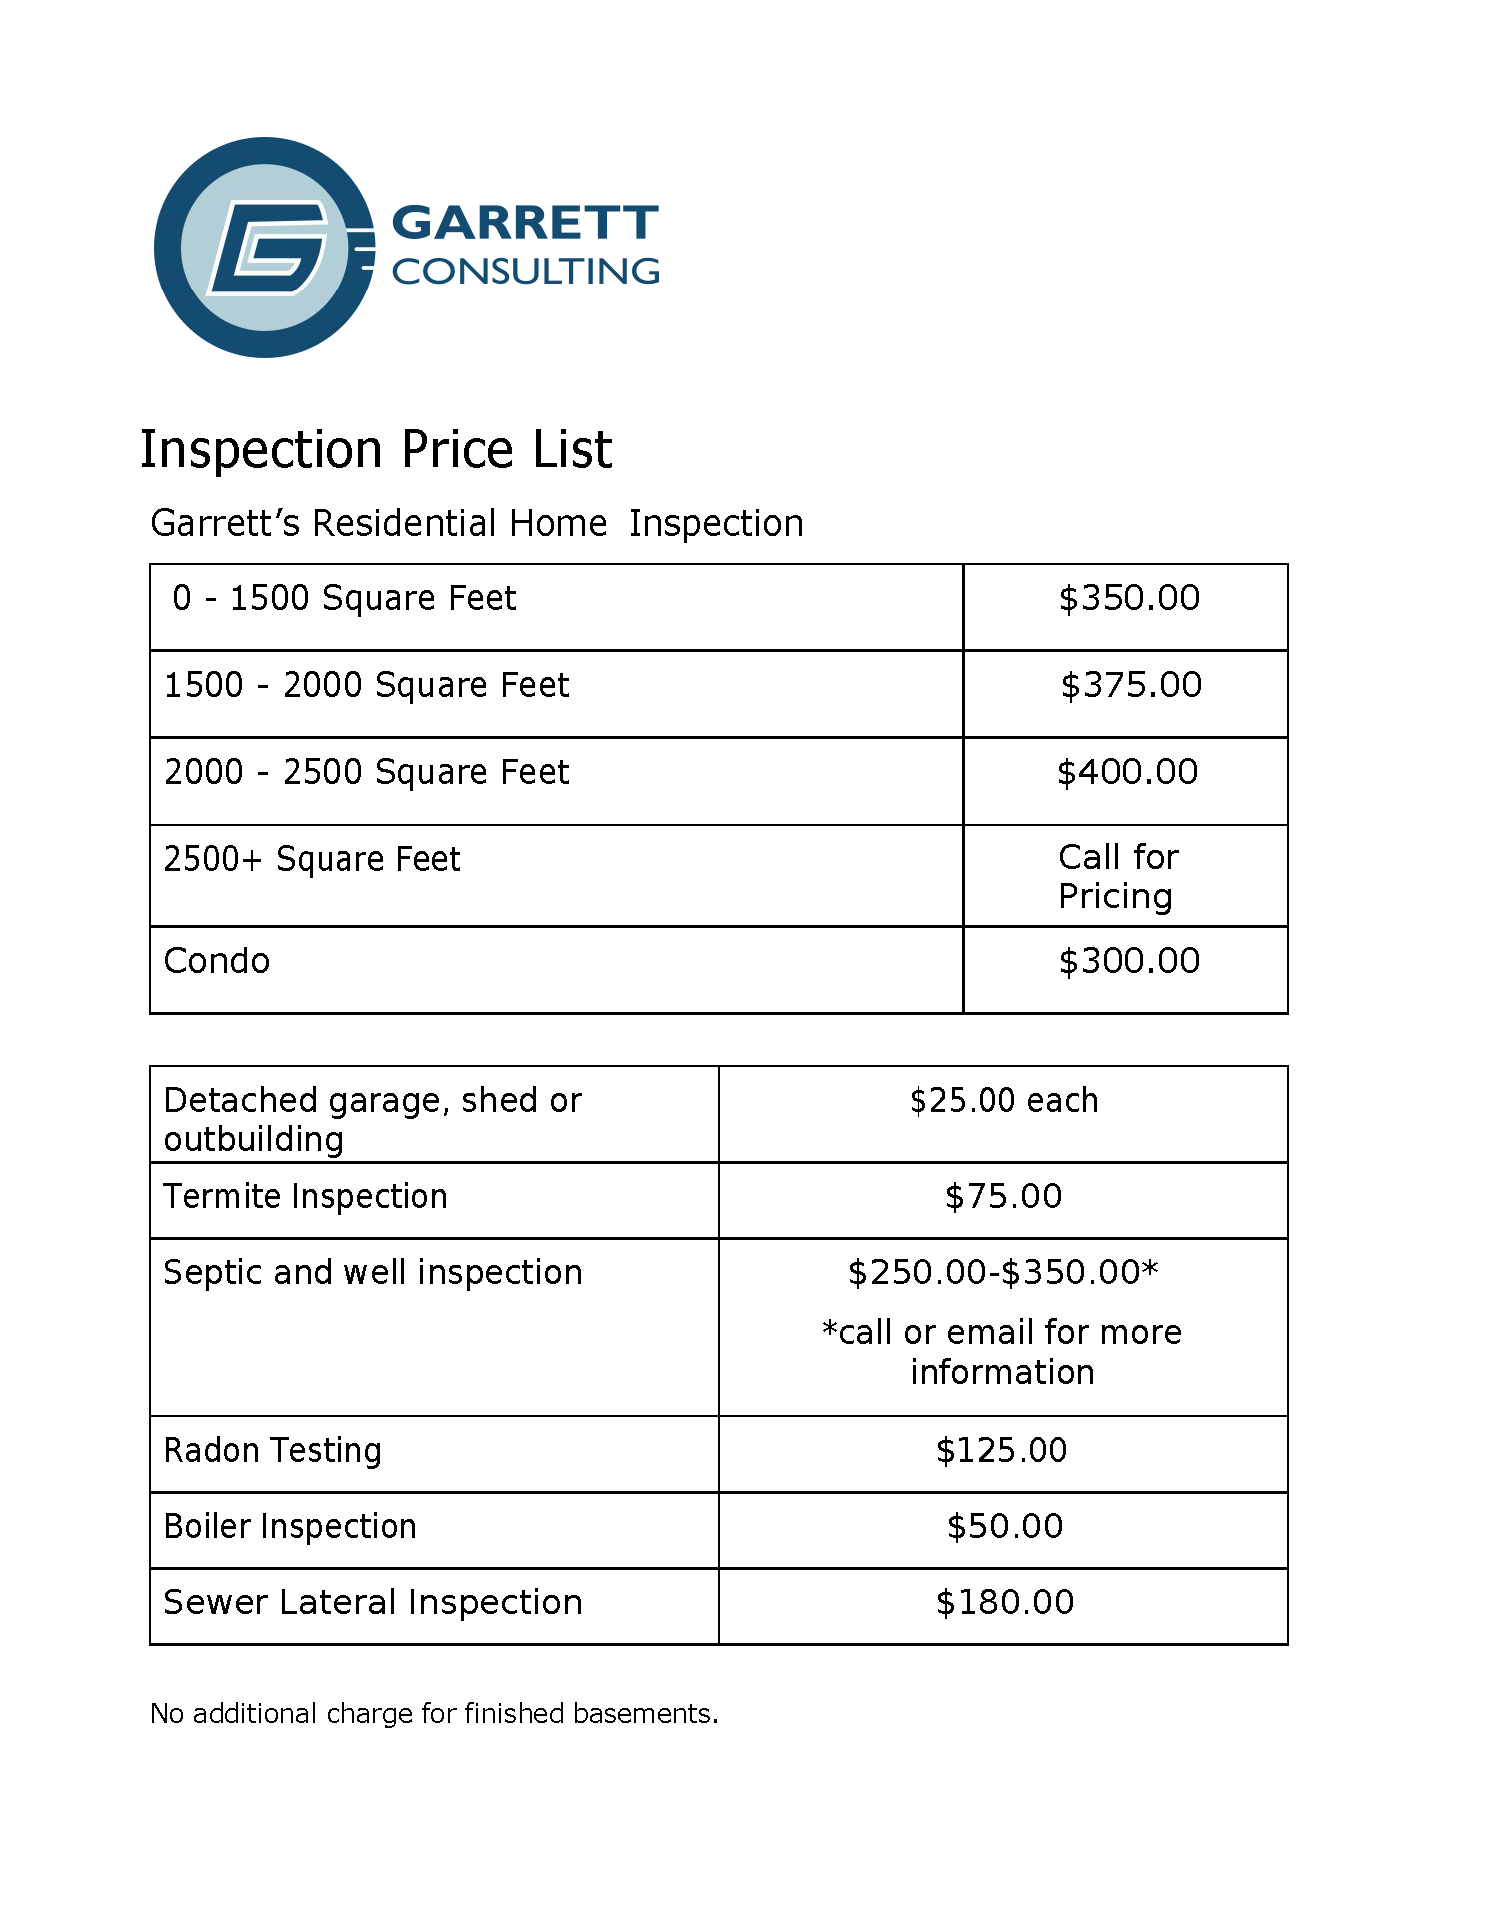 garrett consulting and inspection services